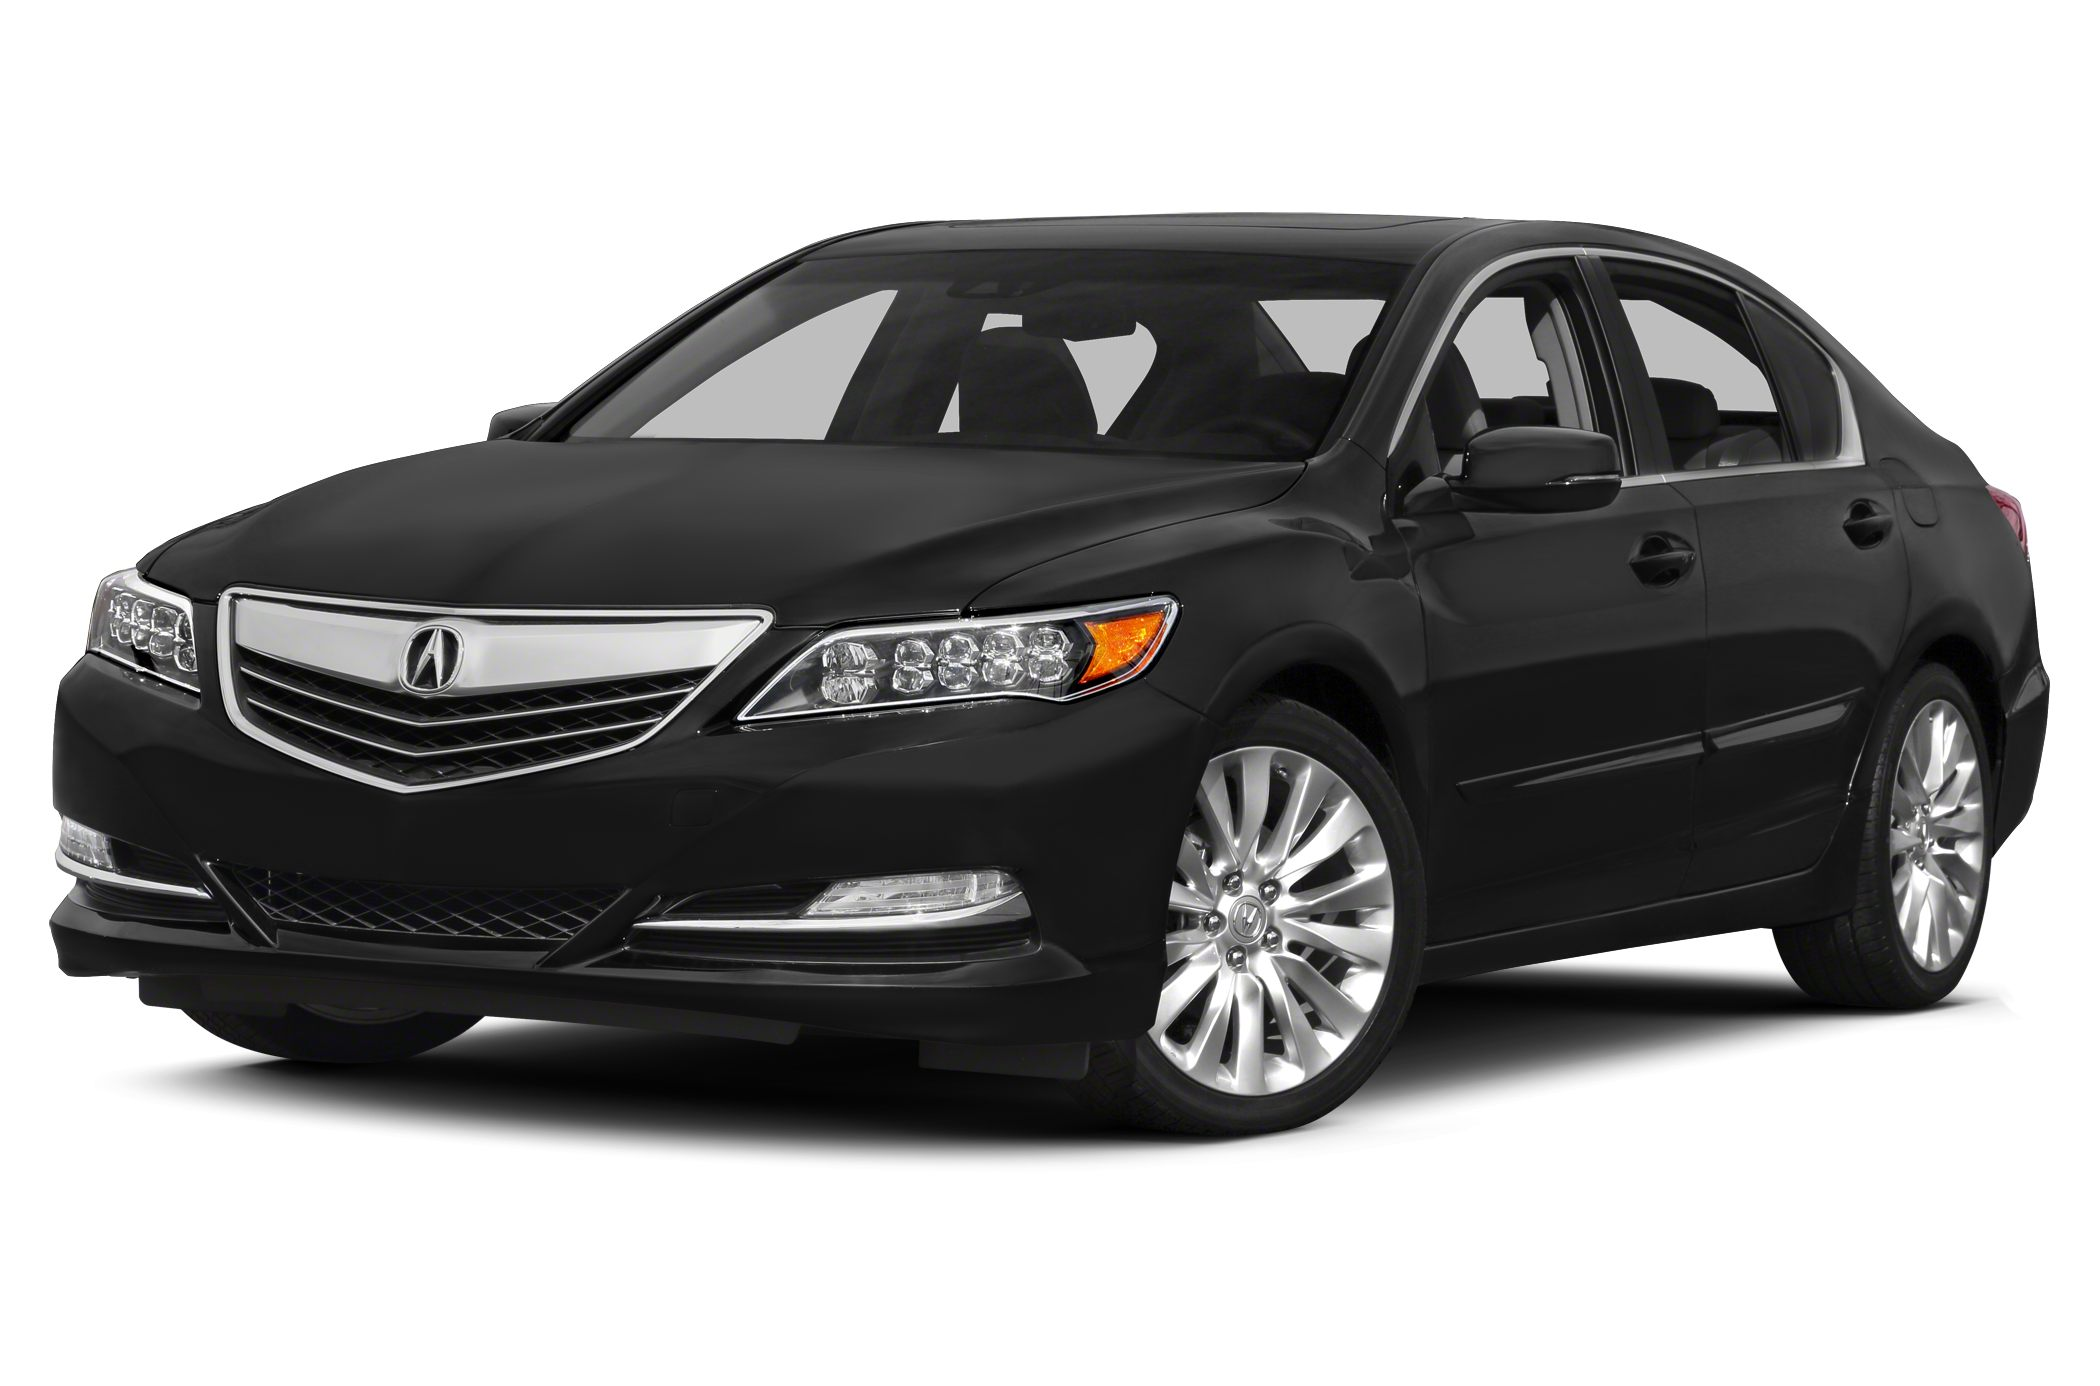 2014 Acura RLX Base Sedan for sale in Huntington for $61,345 with 10 miles